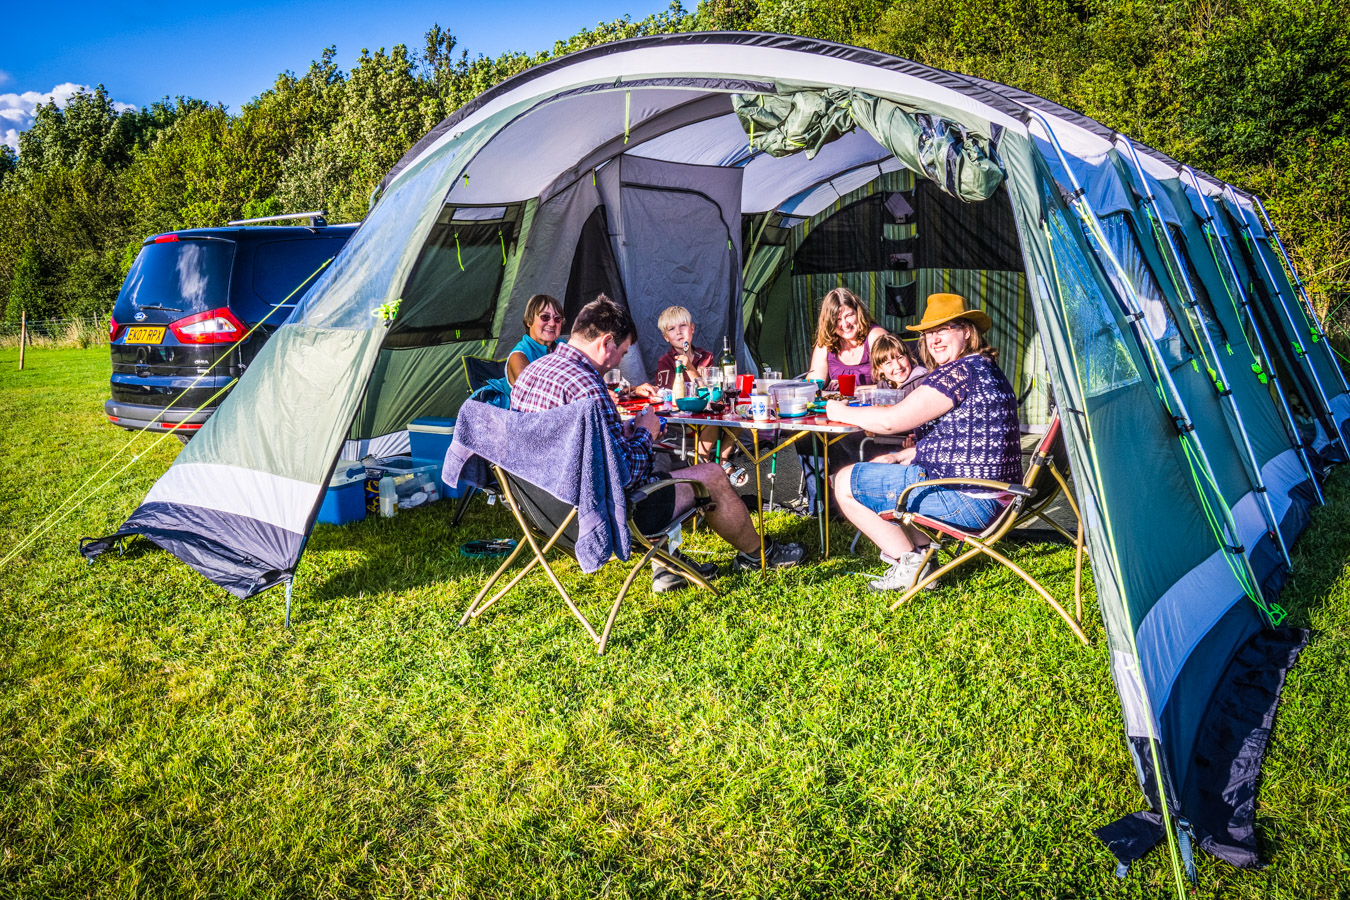 Monkton-Wyld-West-Dorset-Best-Top-Camping-Caravanning200